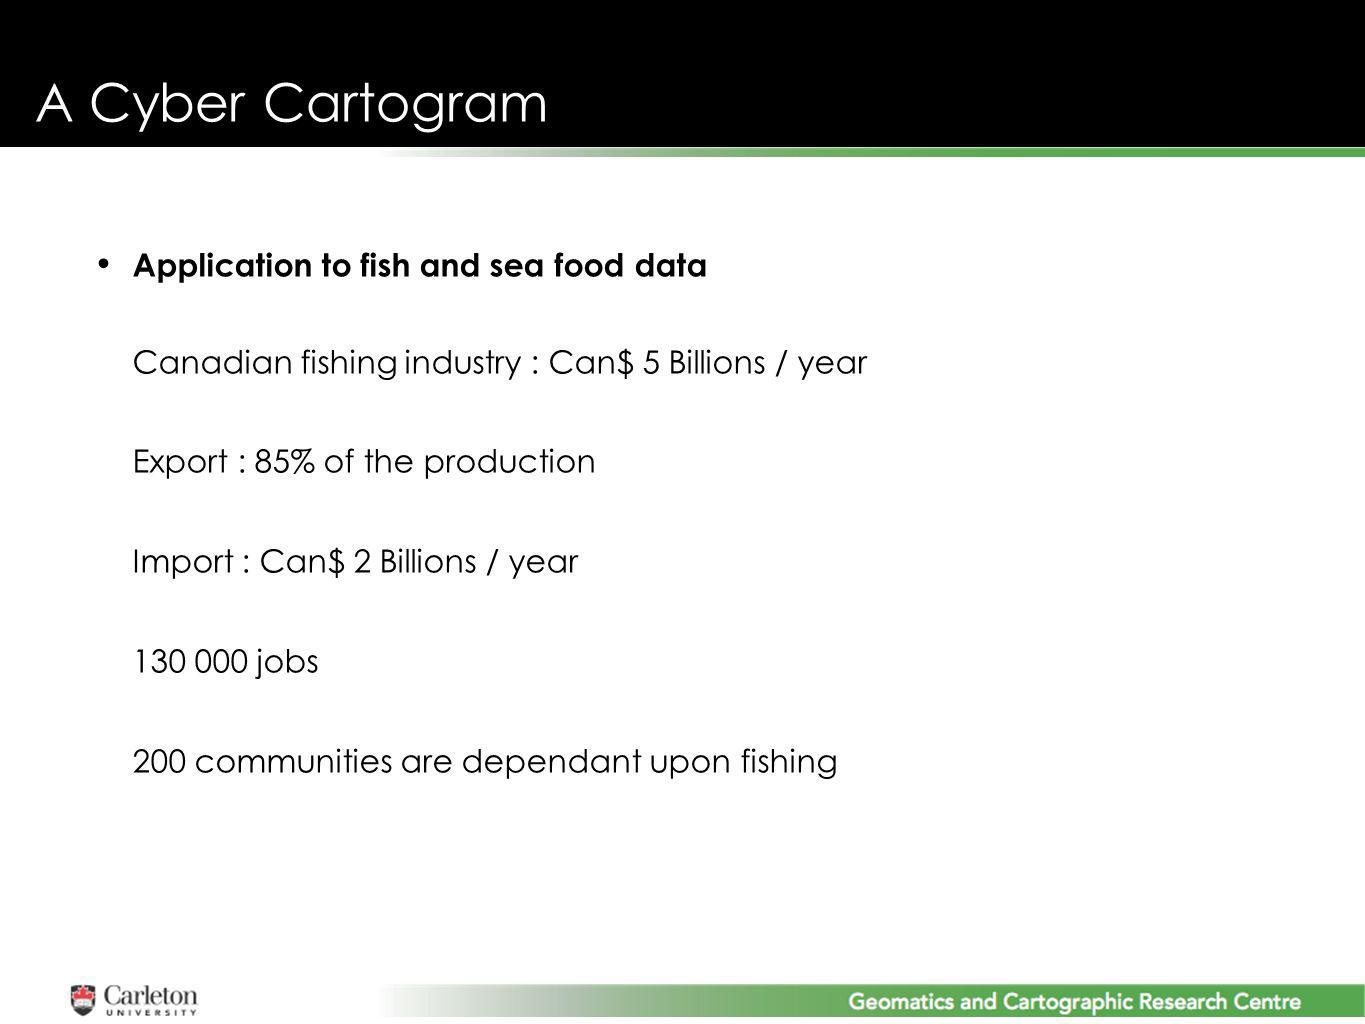 Application to fish and sea food data Canadian fishing industry : Can$ 5 Billions / year Export : 85% of the production Import : Can$ 2 Billions / year 130 000 jobs 200 communities are dependant upon fishing A Cyber Cartogram